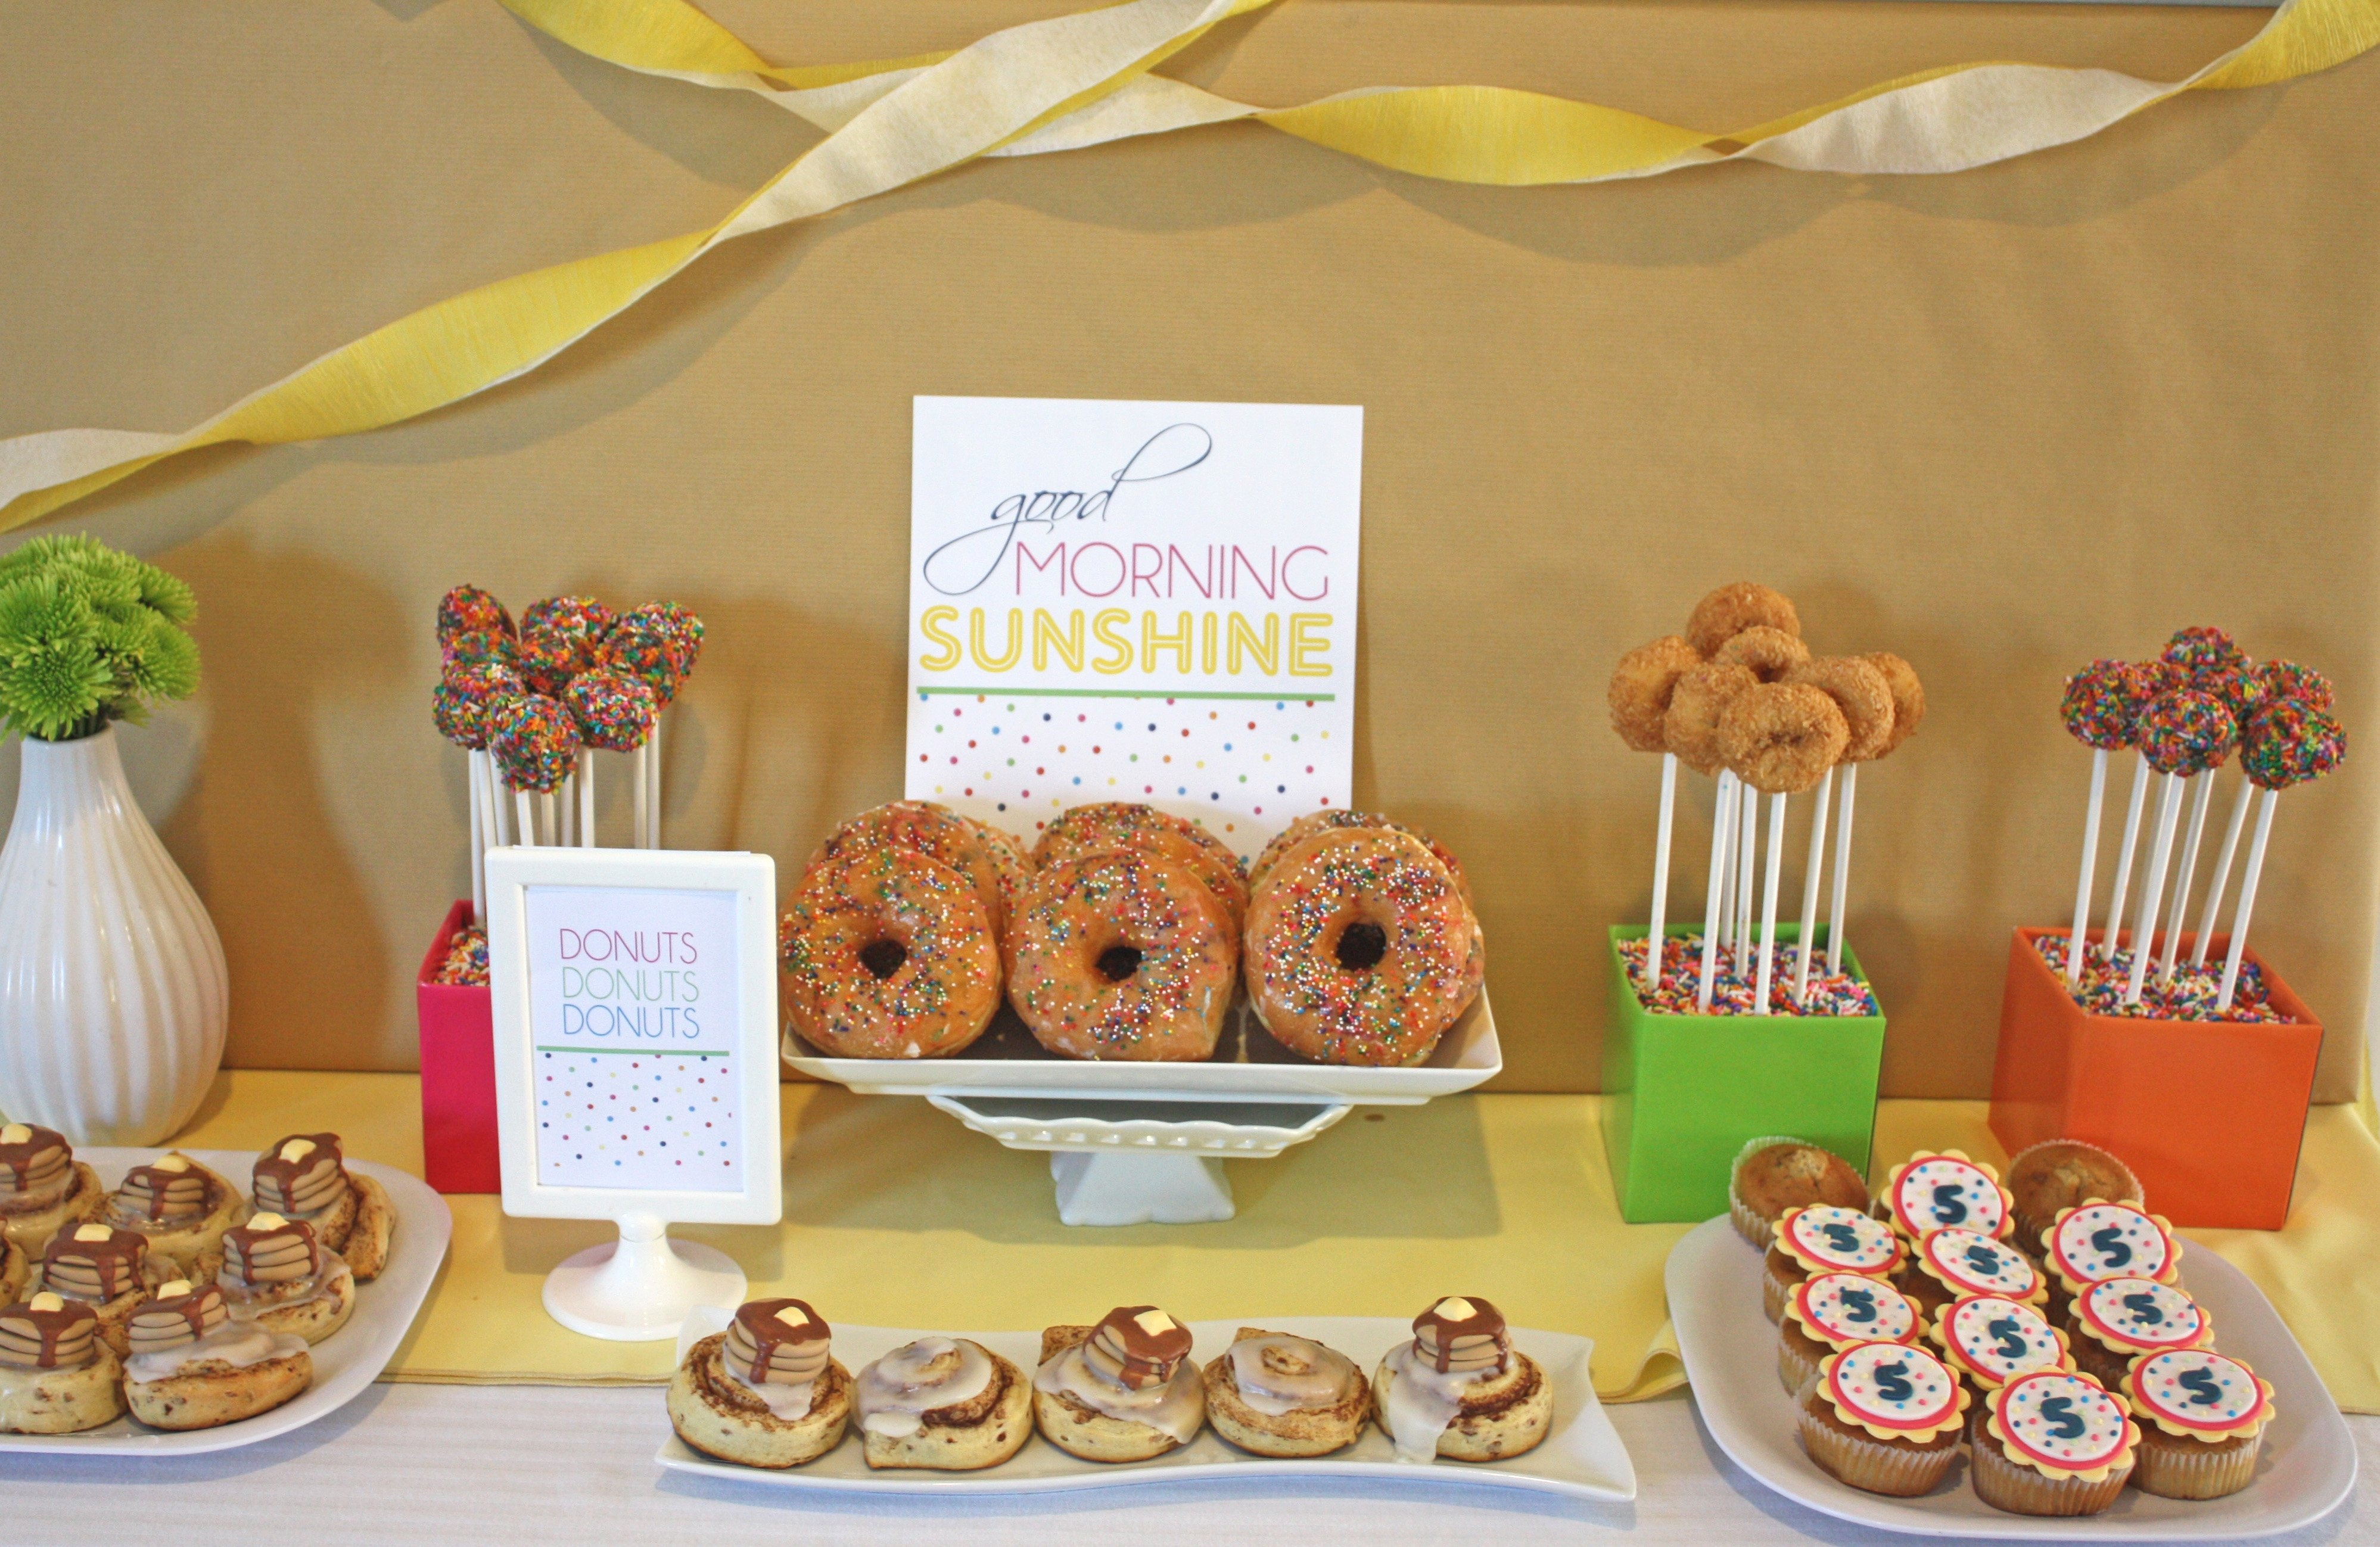 10 Pretty Breakfast Ideas For Work Party birthday breakfast party wear your pajamas thoughtfully simple 2